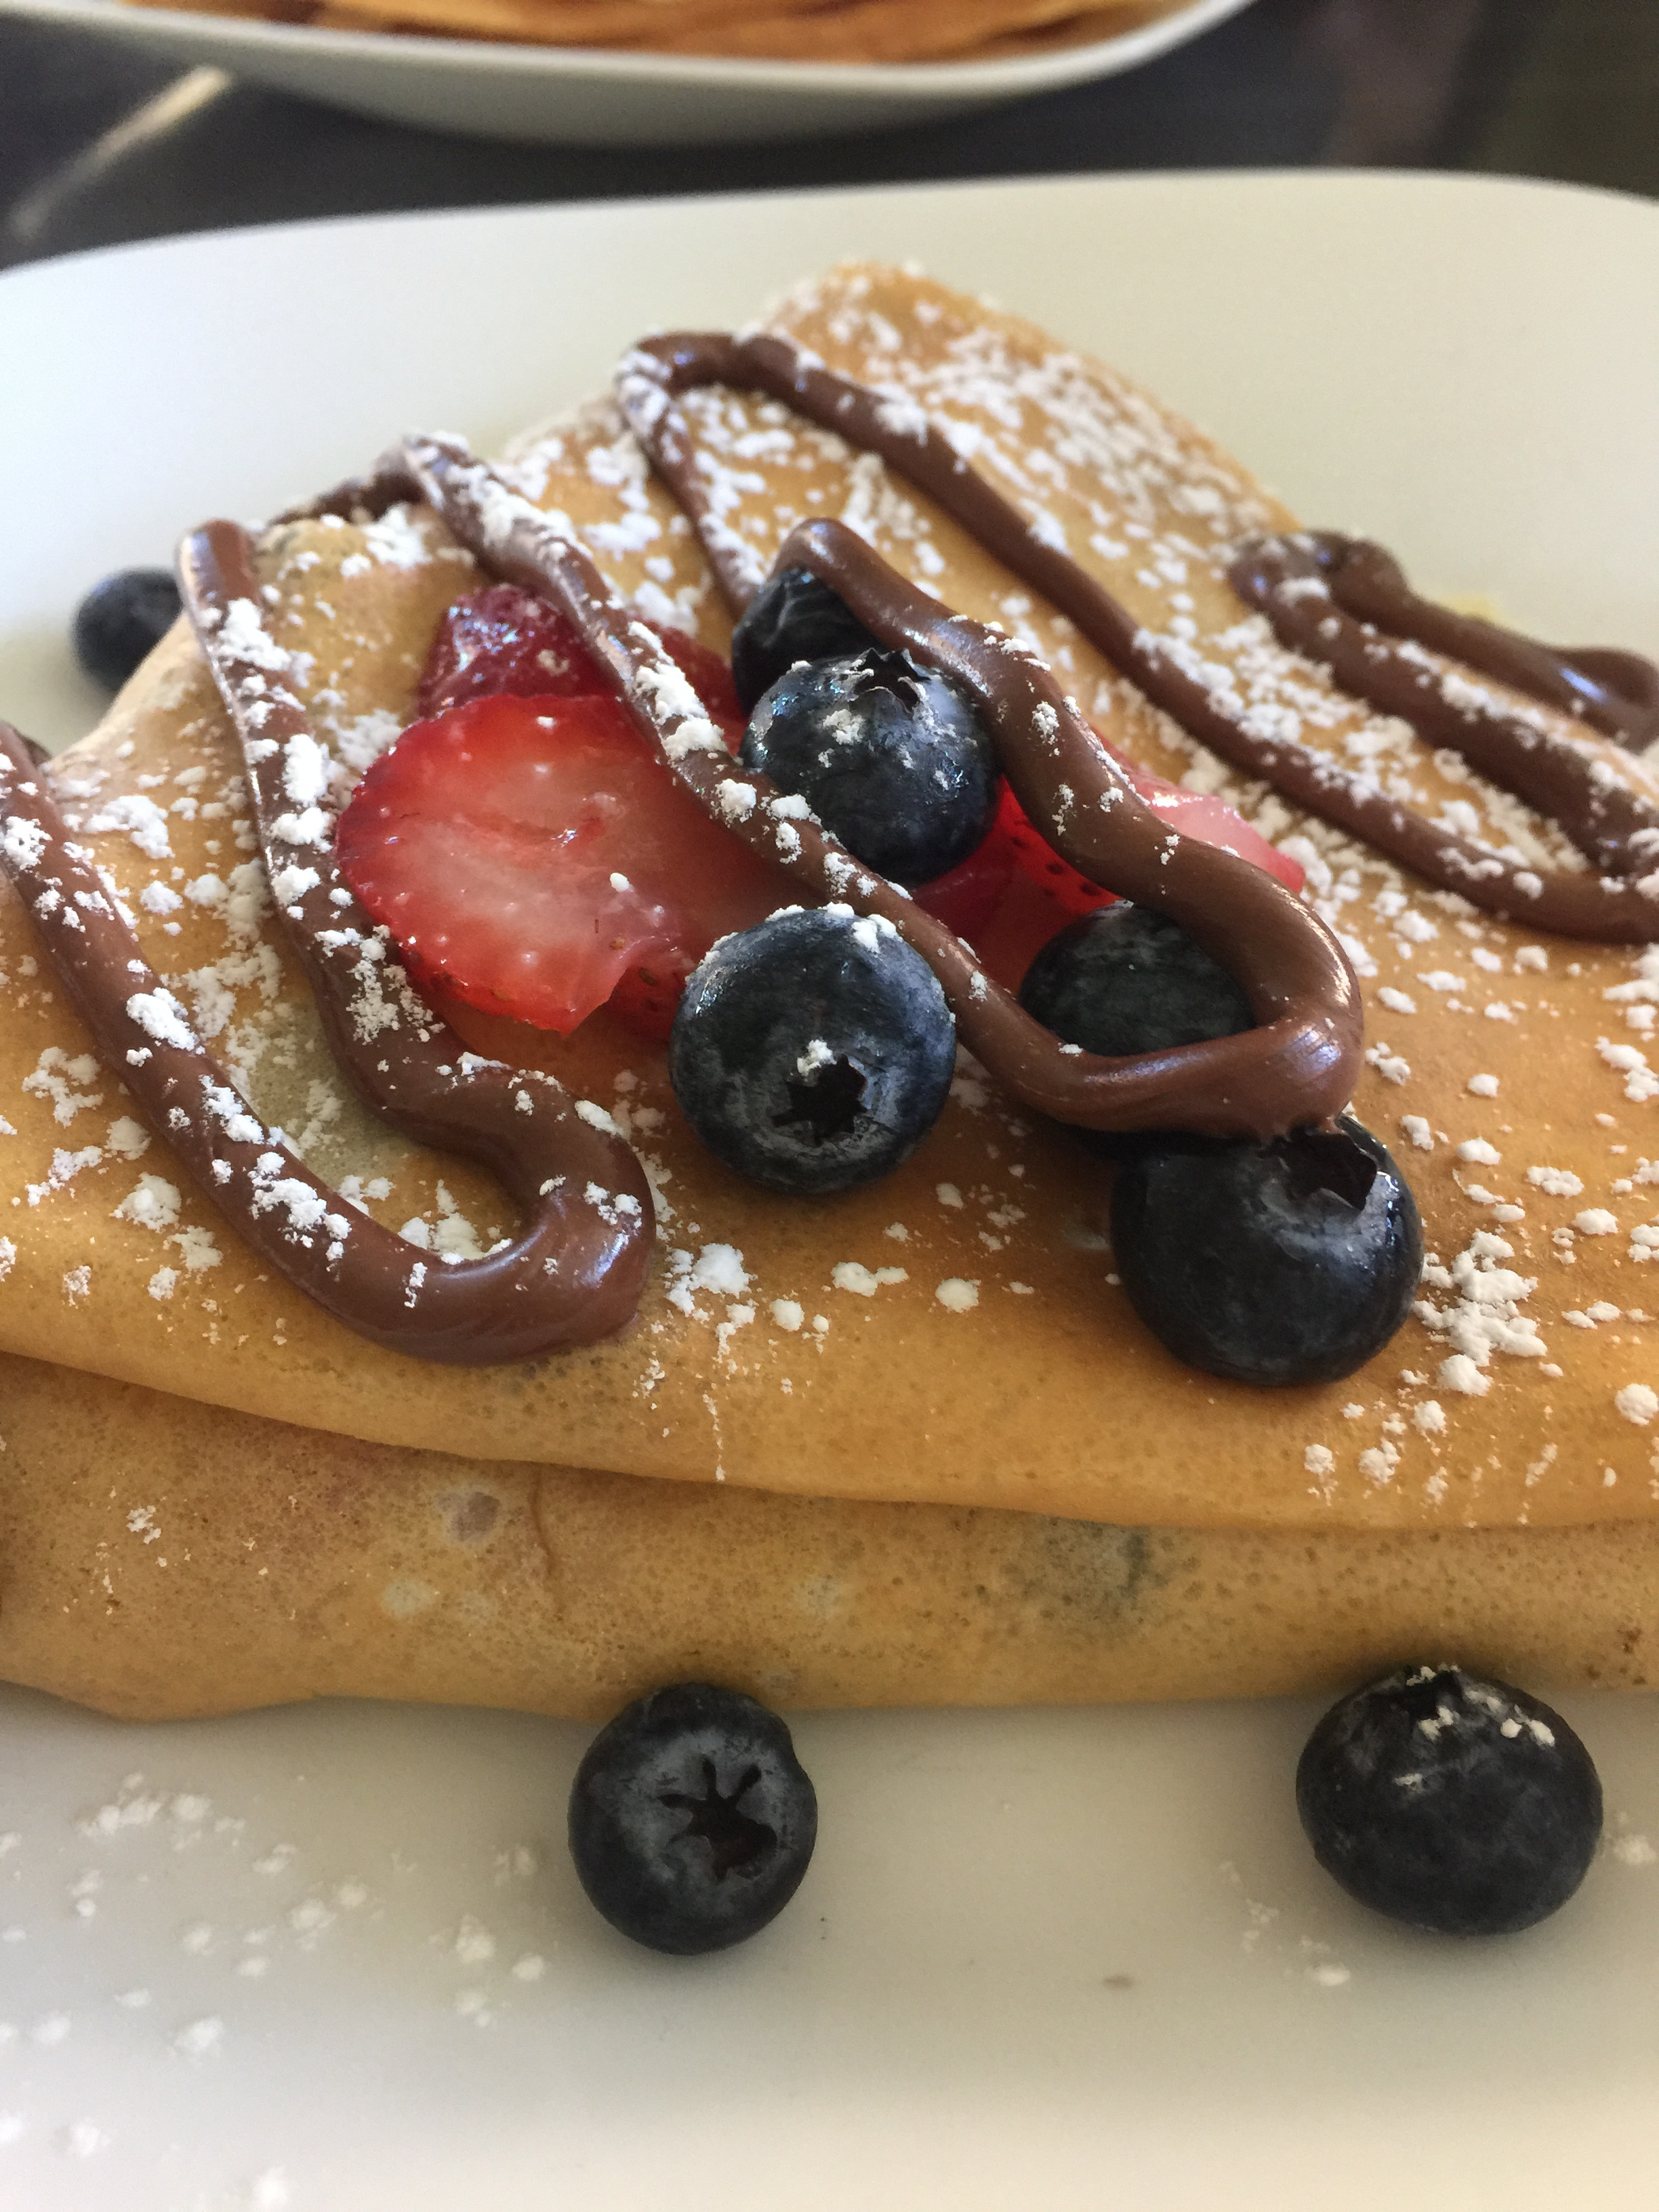 Getting up-close-and-personal with my fruit and Neutella stuffed crepe